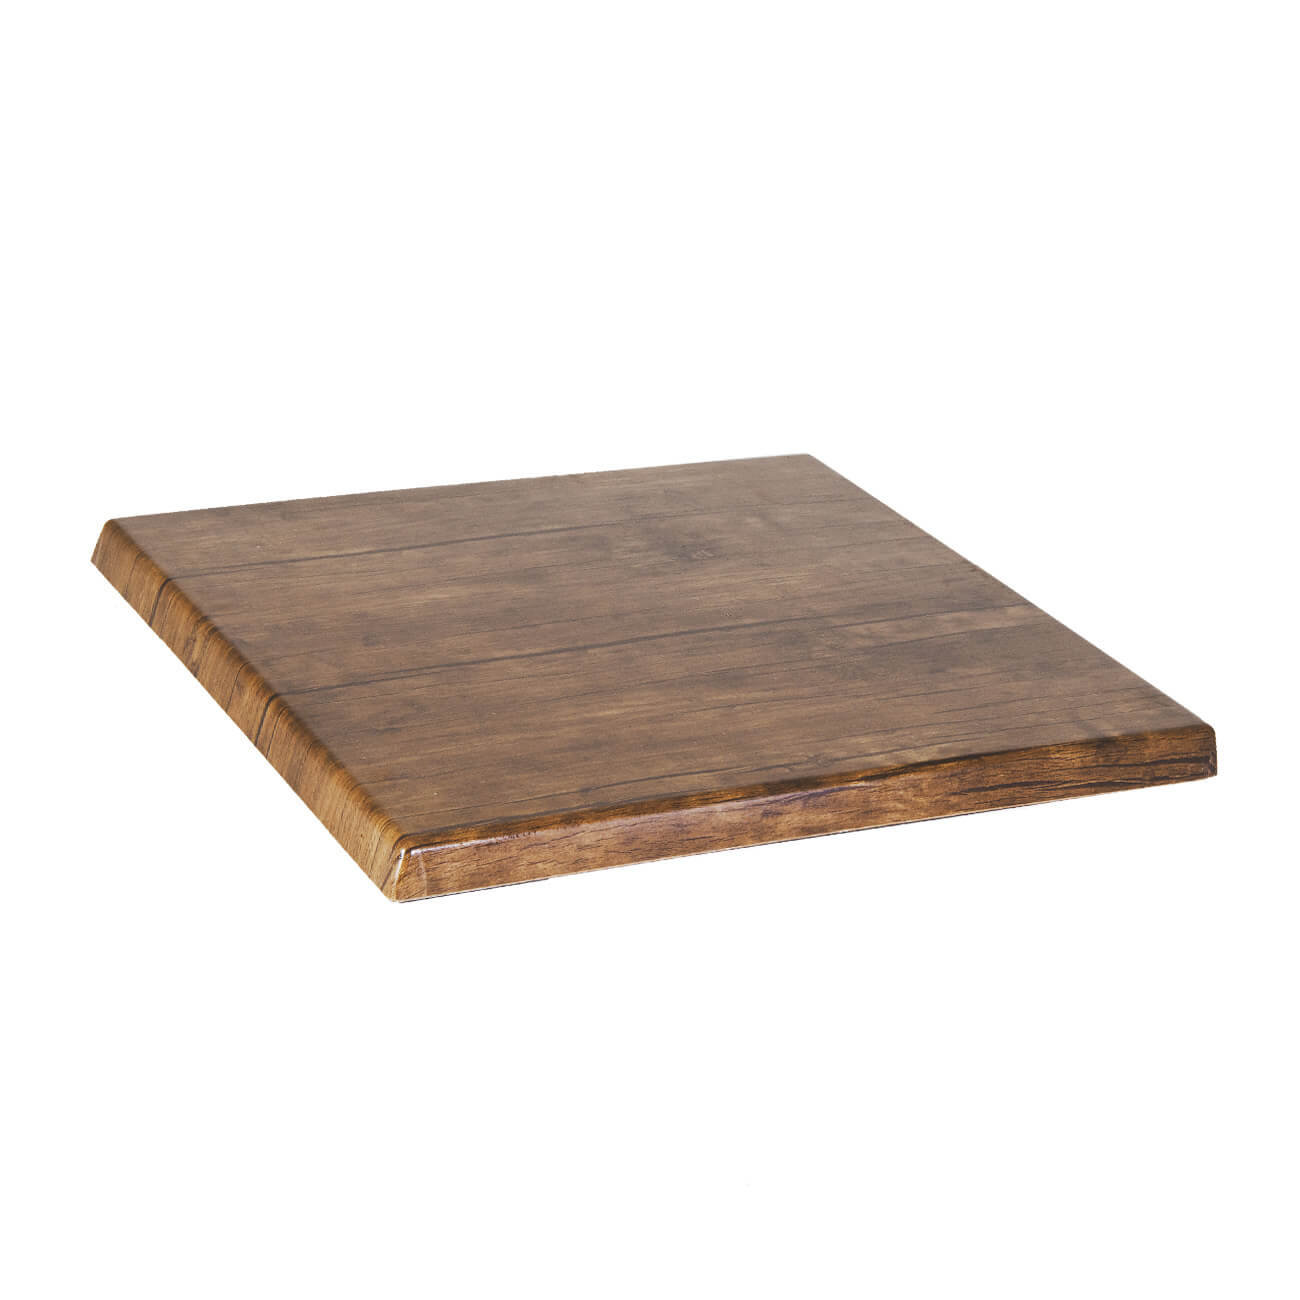 Wood Grain Resin Table Top